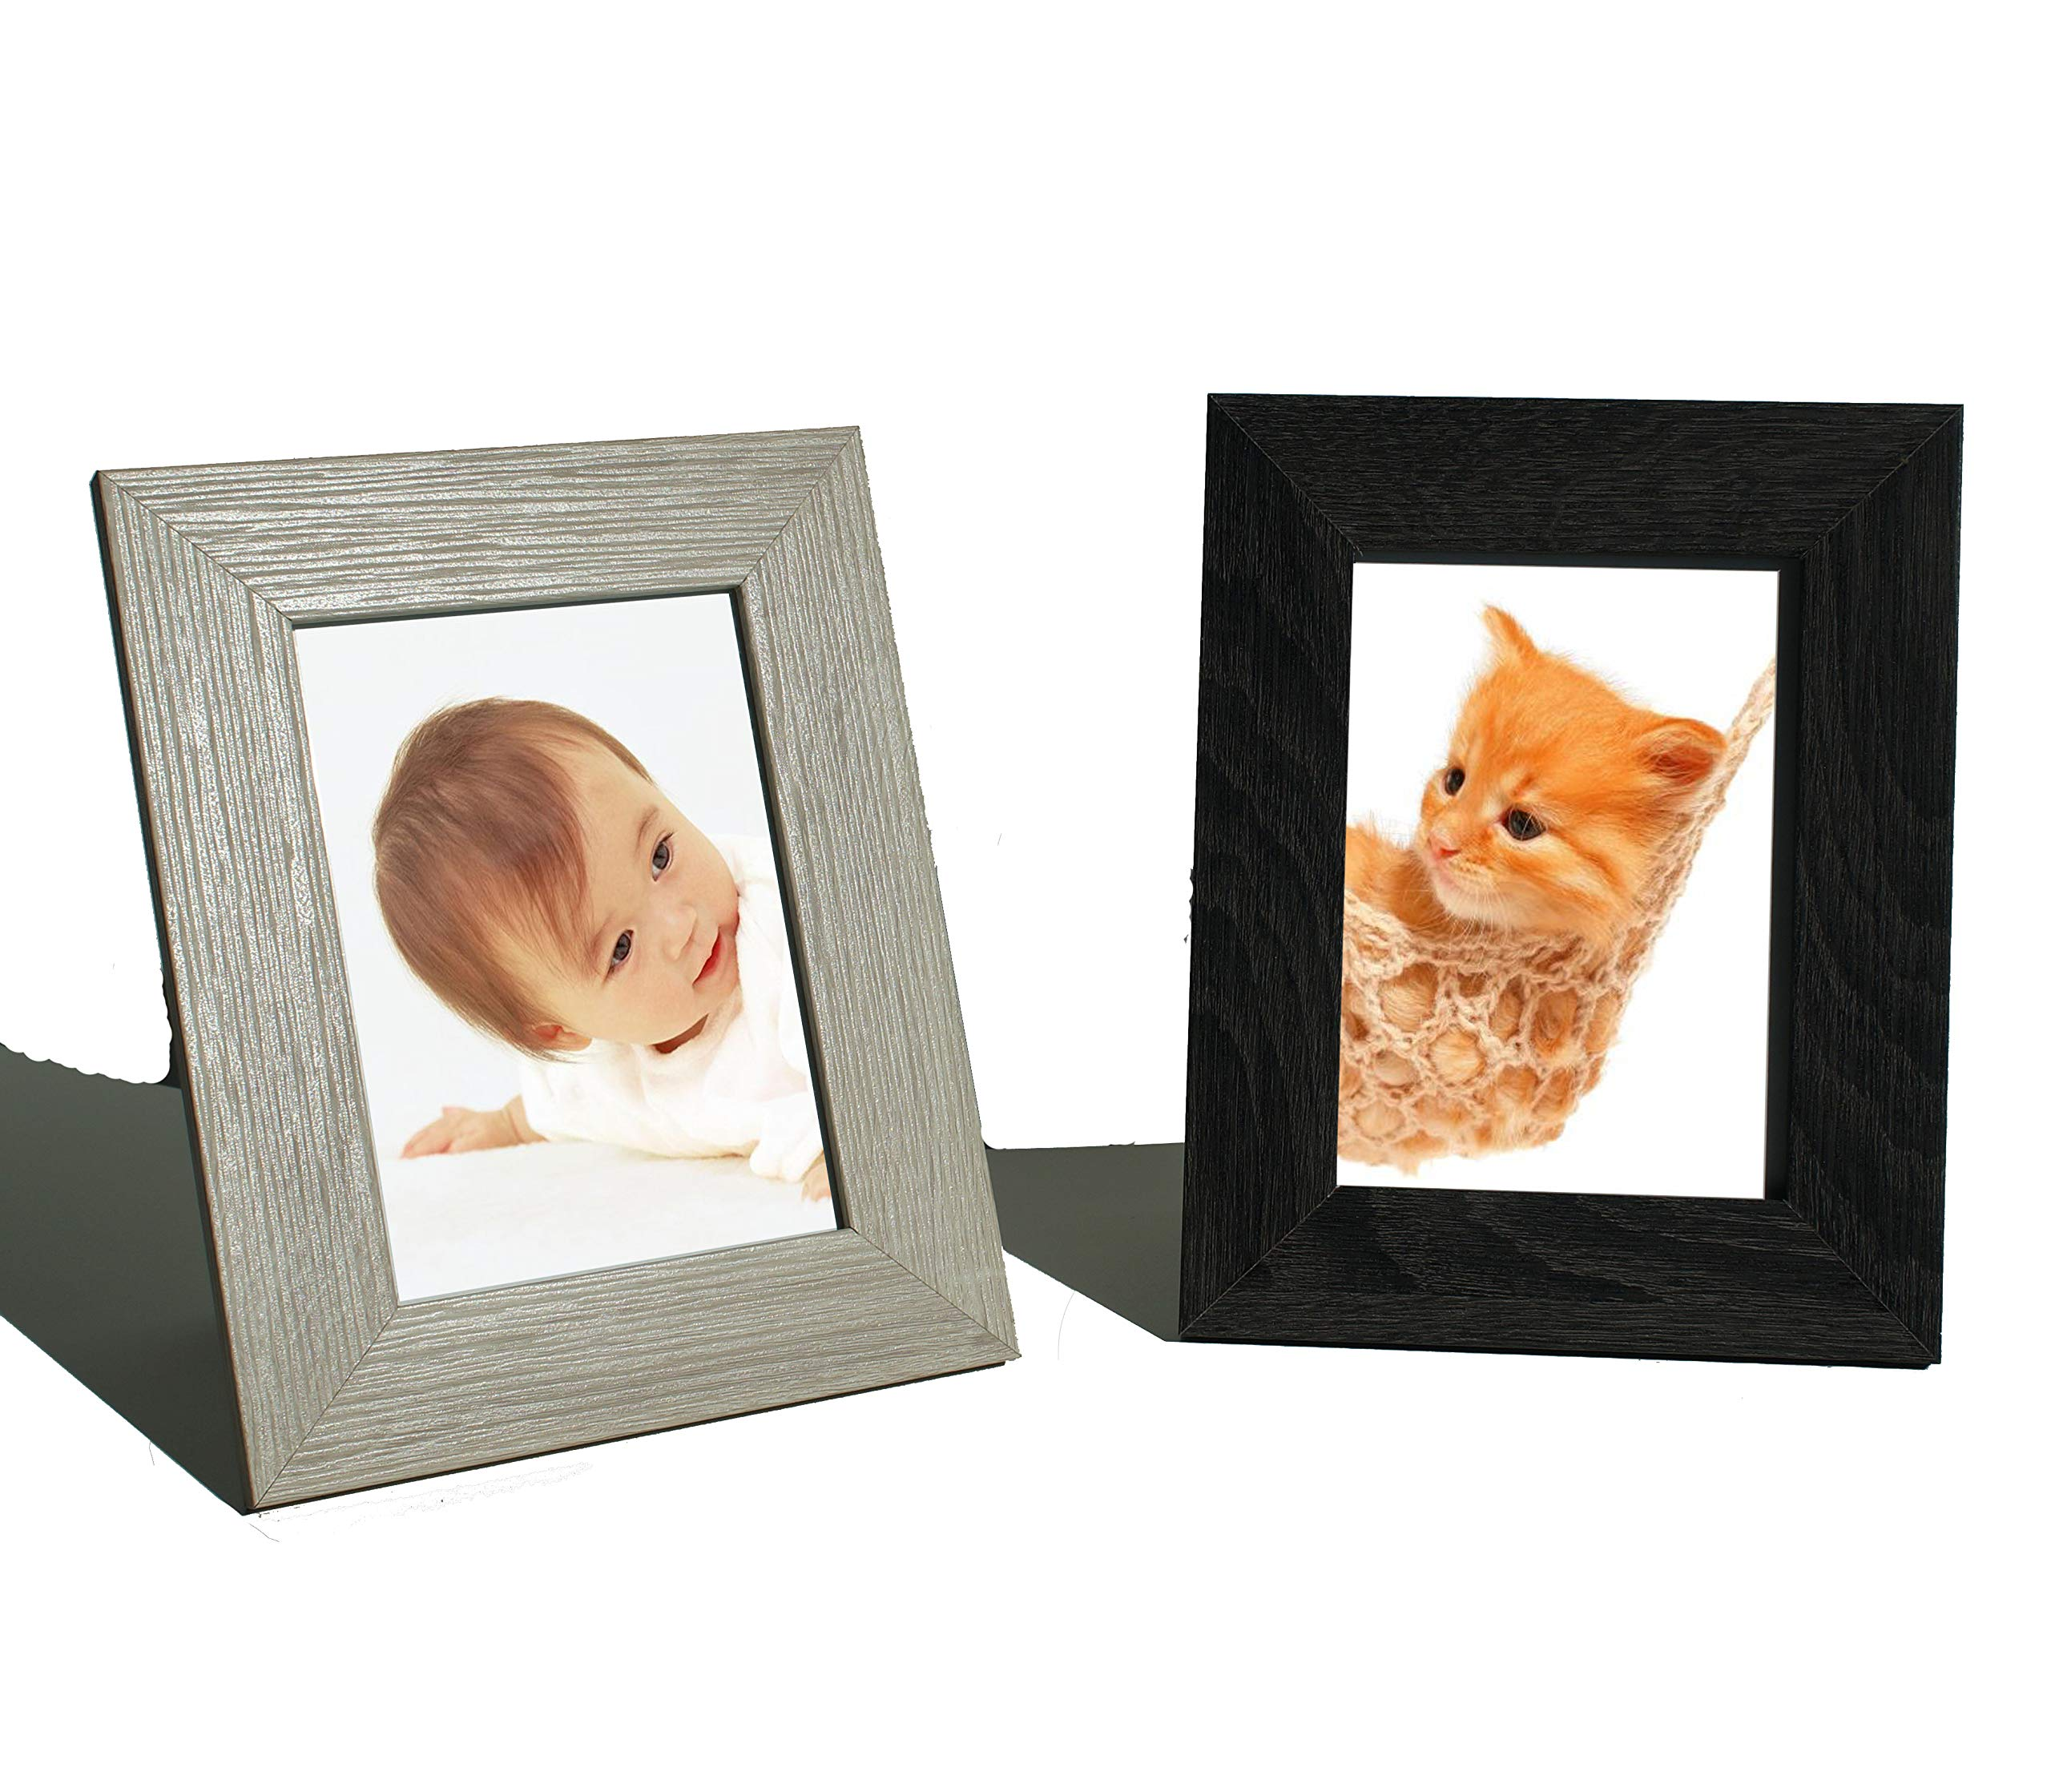 These Handmade Picture Frames Are Premium Quality!